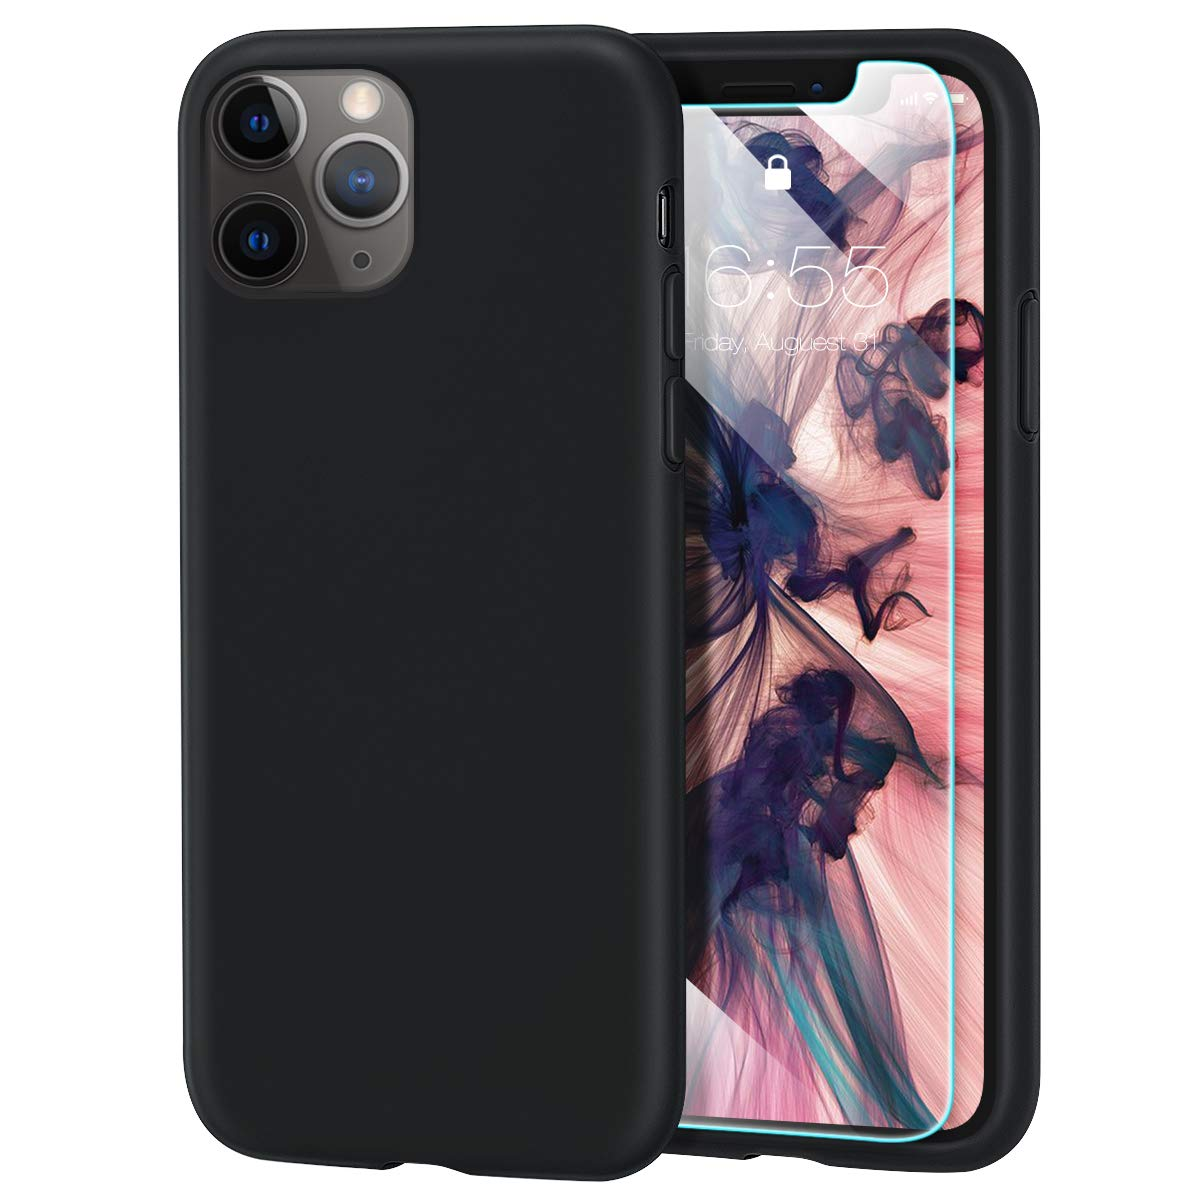 MILPROX iPhone 11 Pro Case with Screen Protector, Liquid Silicone Gel Rubber Shockproof Slim Shell with Soft Microfiber Cloth Lining Cushion Cover for iPhone 11 Pro 5.8 inch (2019)-Black